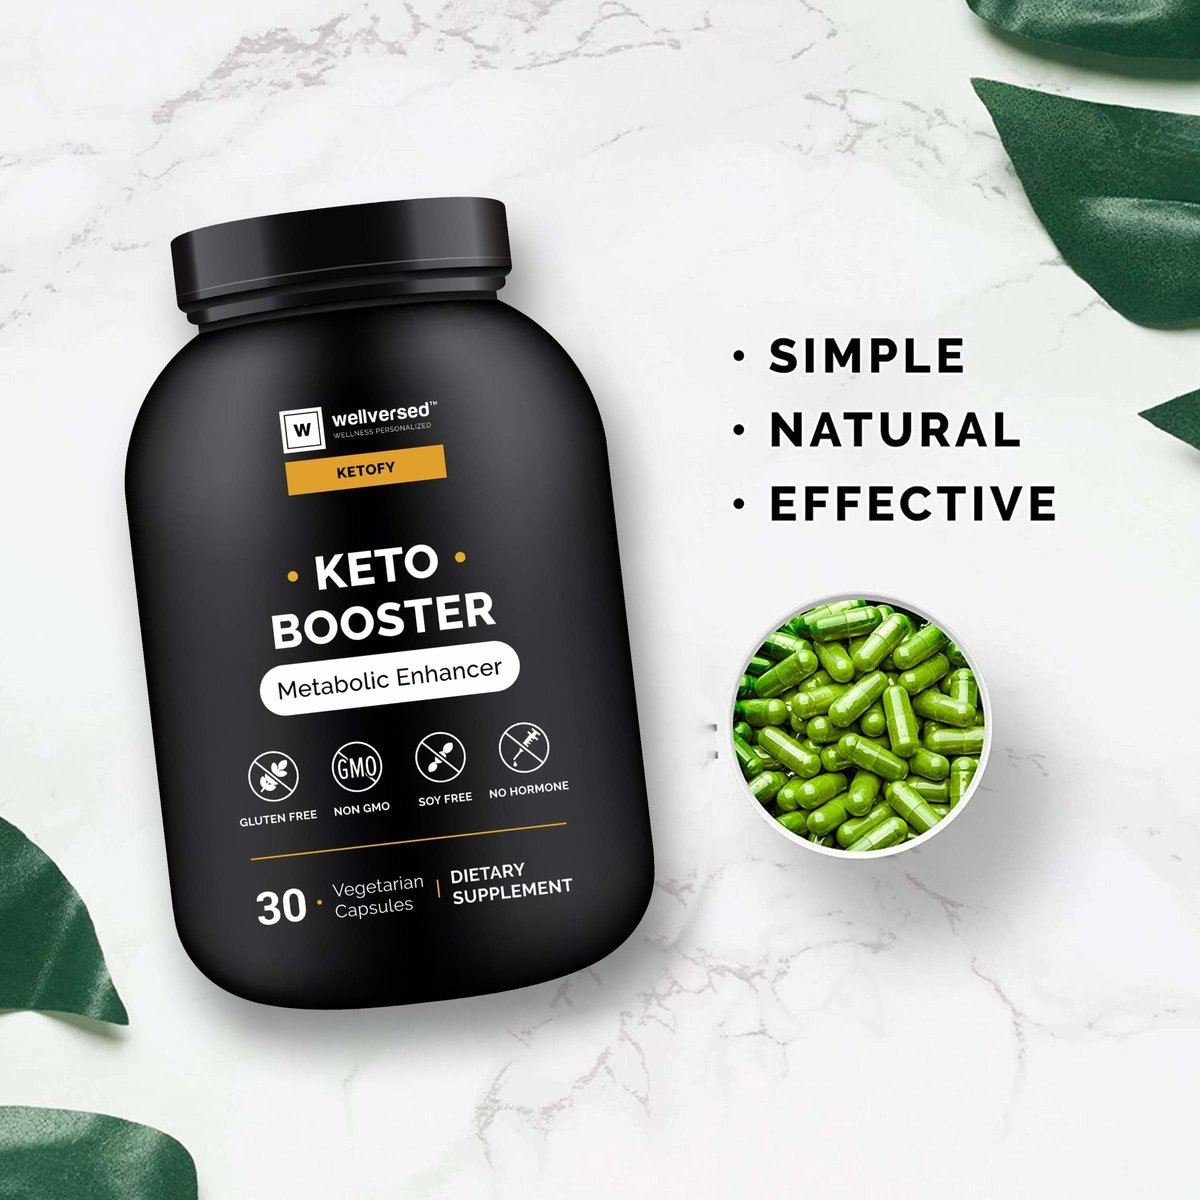 Ketofy - Keto Boosters (30 Pills) | Advanced Weight Management Supplement | Natural Fat Burner, Metabolism Booster